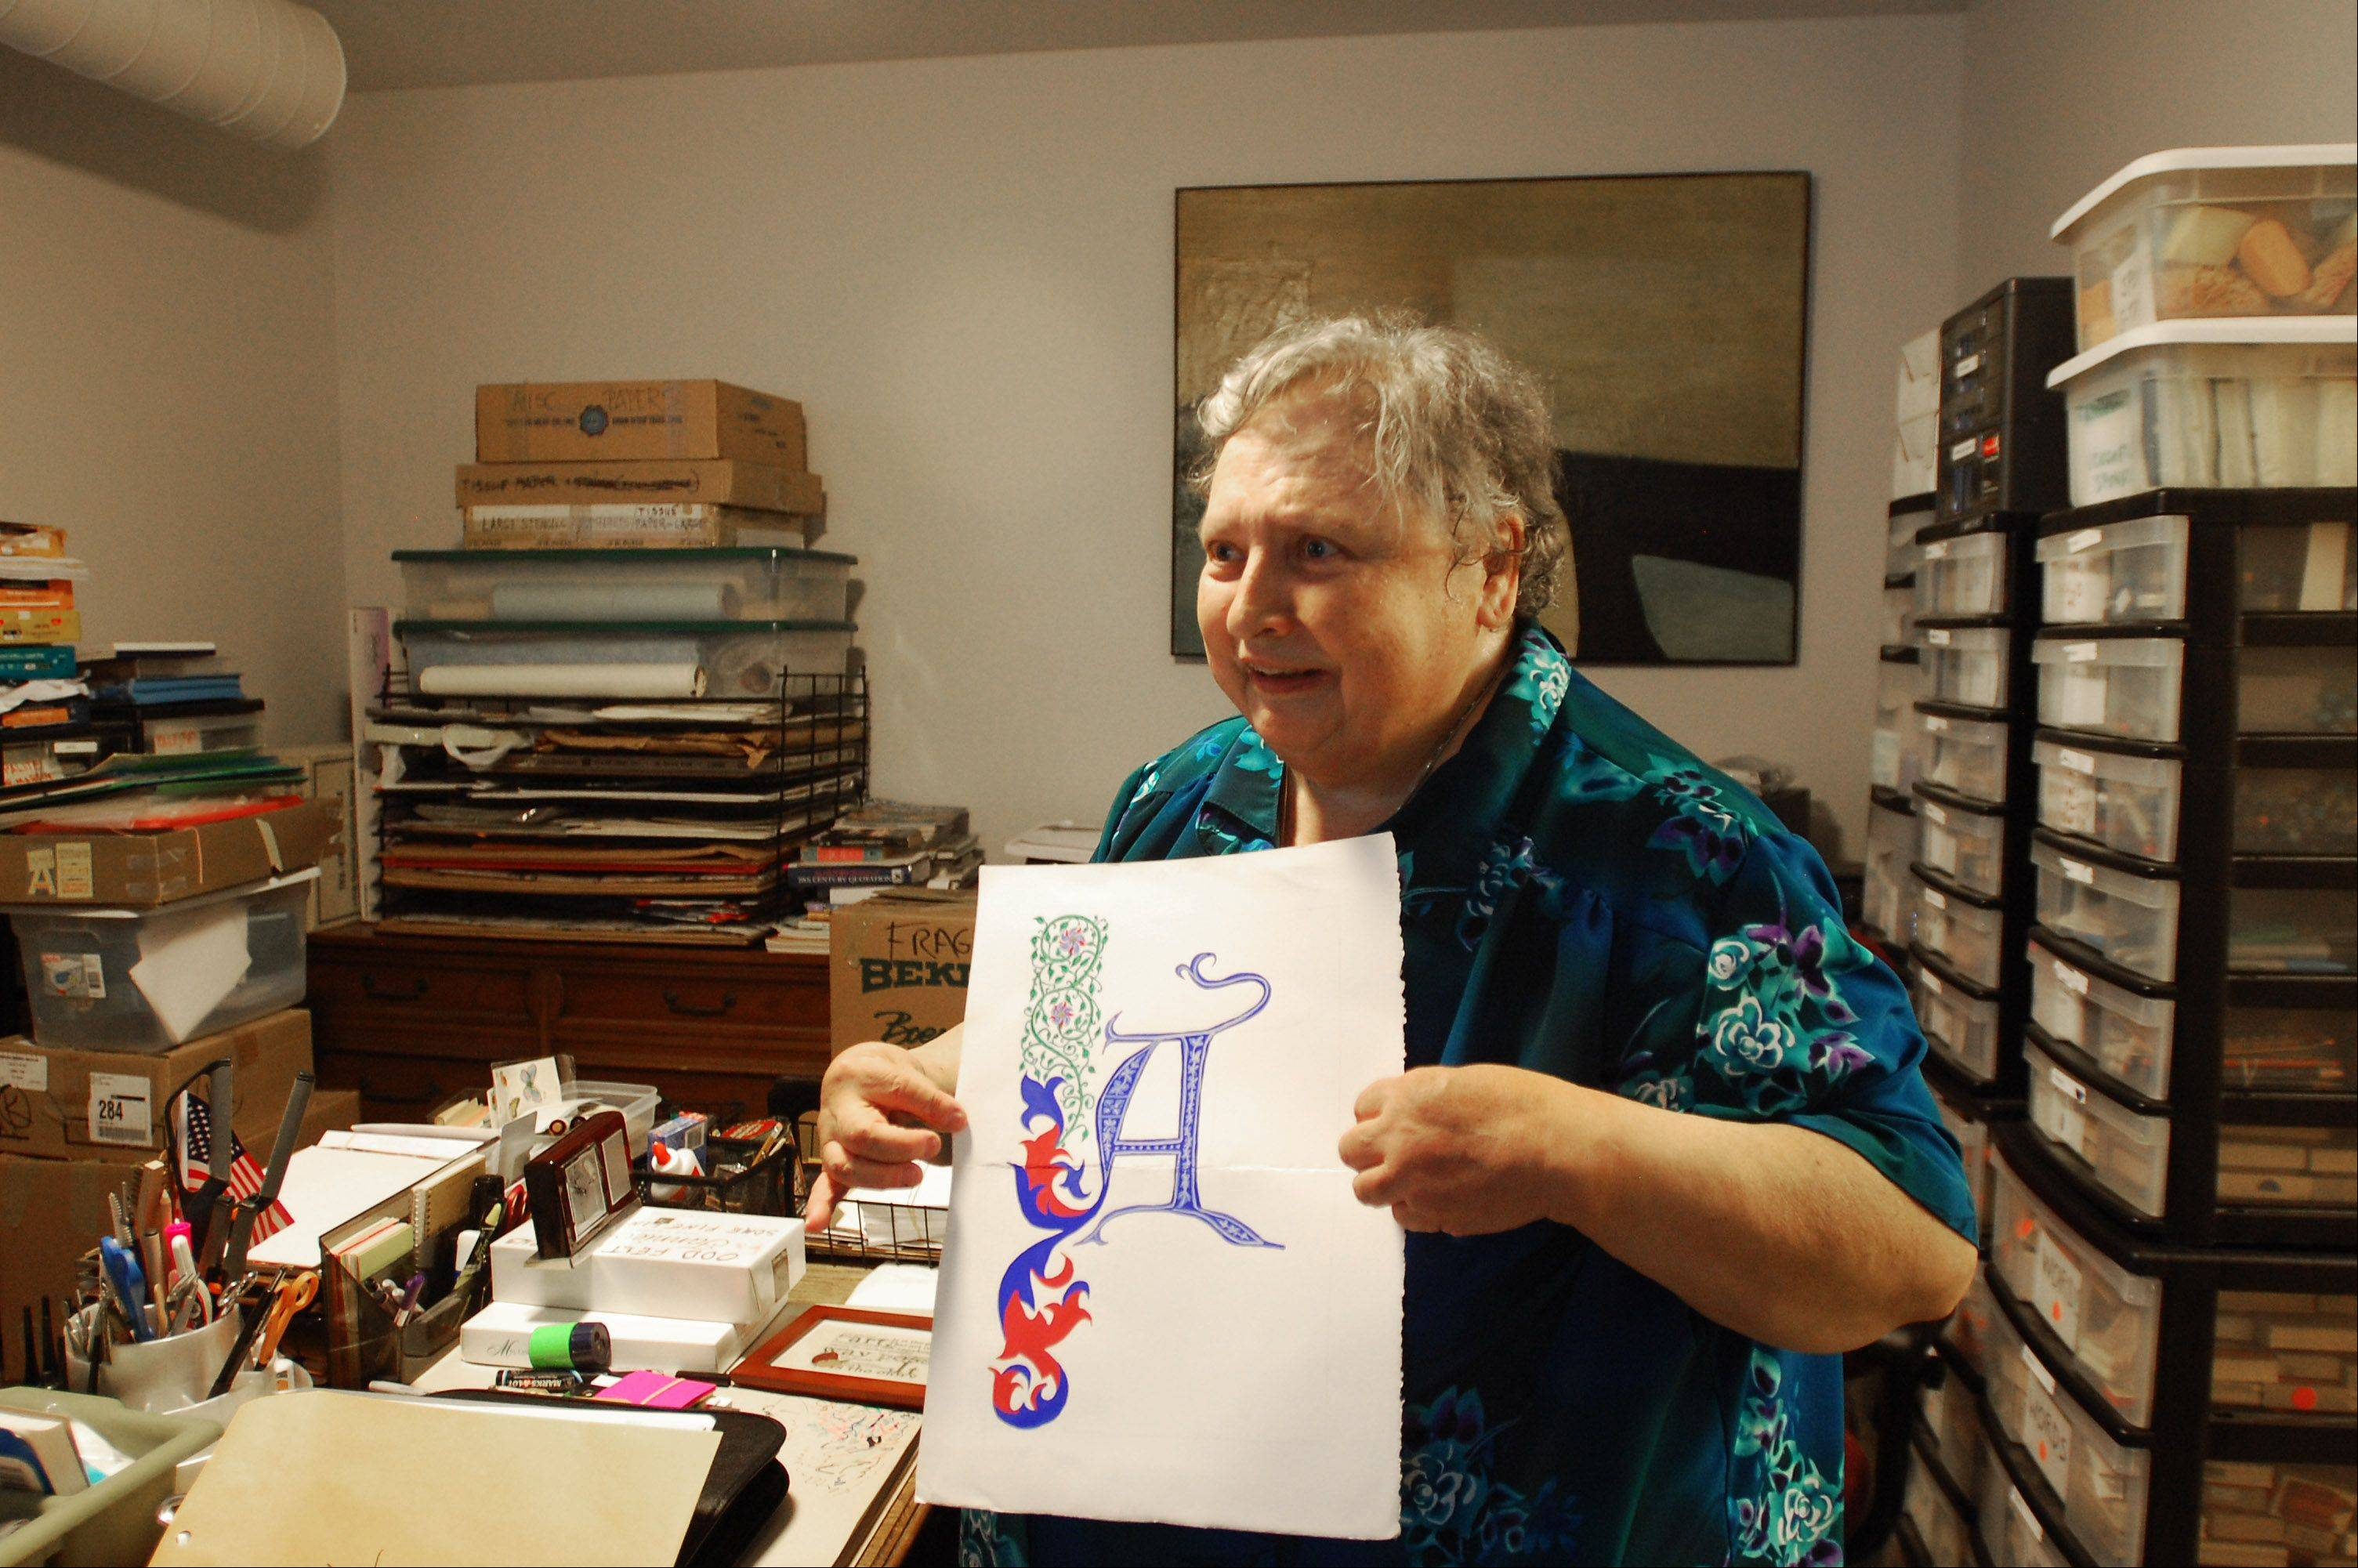 Sister Diane Weifenbach shows off one of her calligraphy pieces in her workspace at Elgin Artspace Lofts in downtown Elgin.